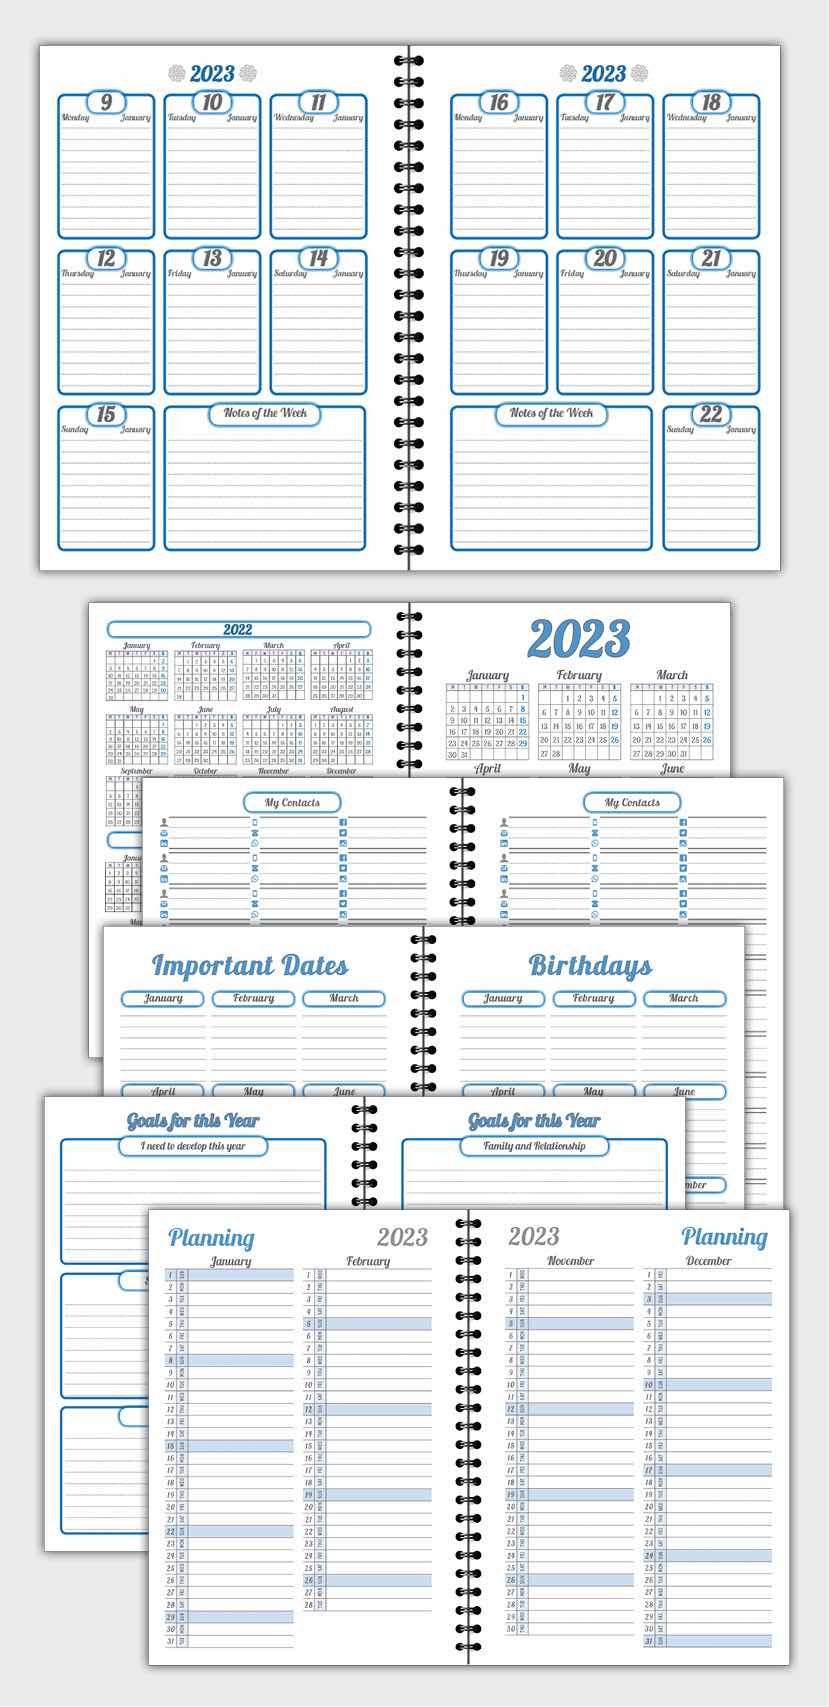 2020 DAILY PLANNER AGENDA TEMPLATE MODEL ATD76